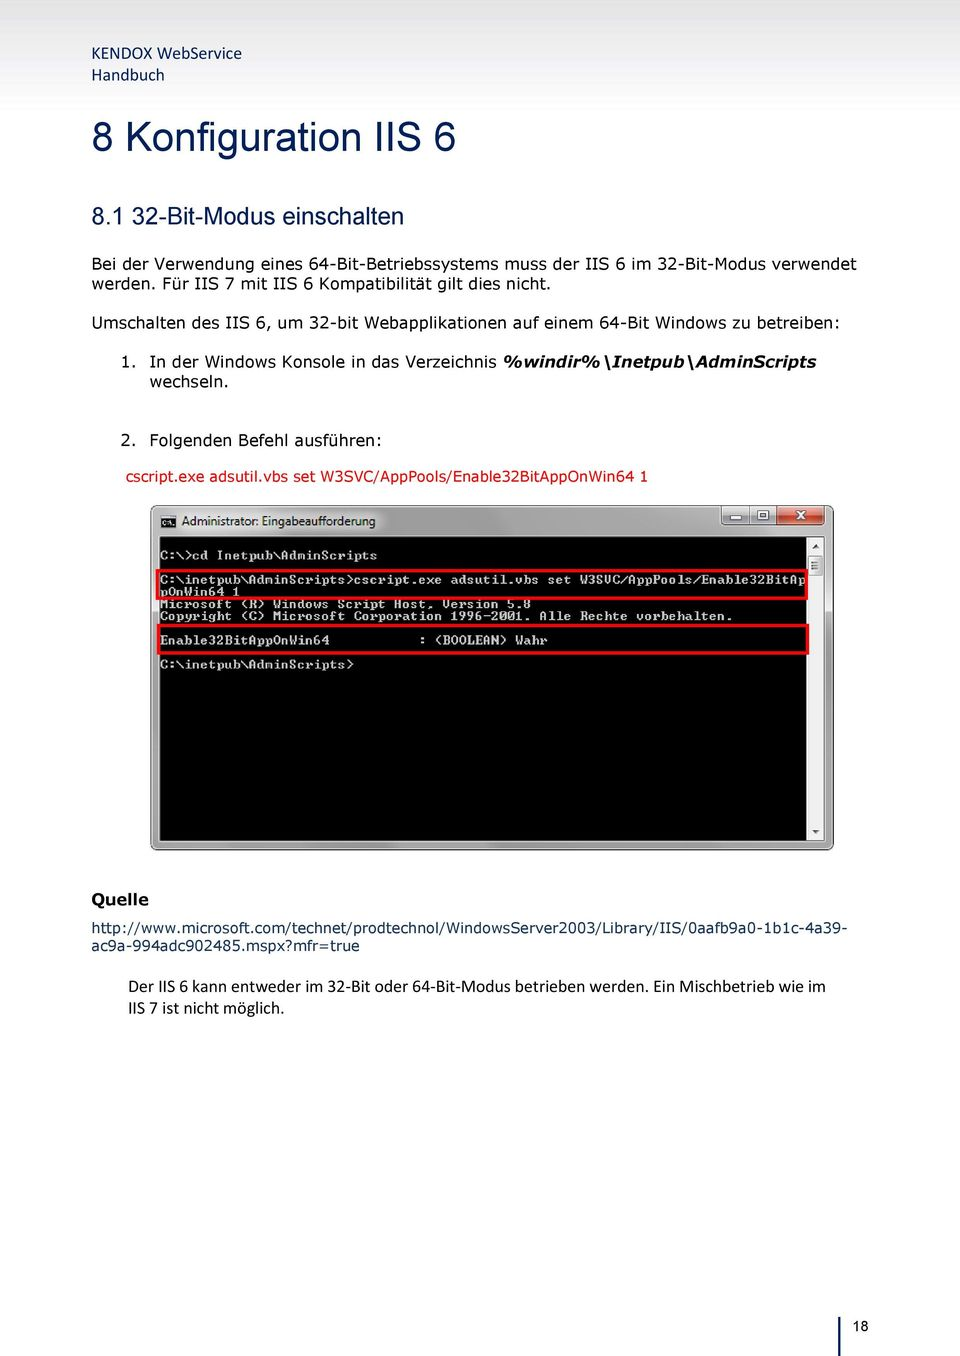 In der Windows Konsole in das Verzeichnis %windir%\inetpub\adminscripts wechseln. 2. Folgenden Befehl ausführen: cscript.exe adsutil.